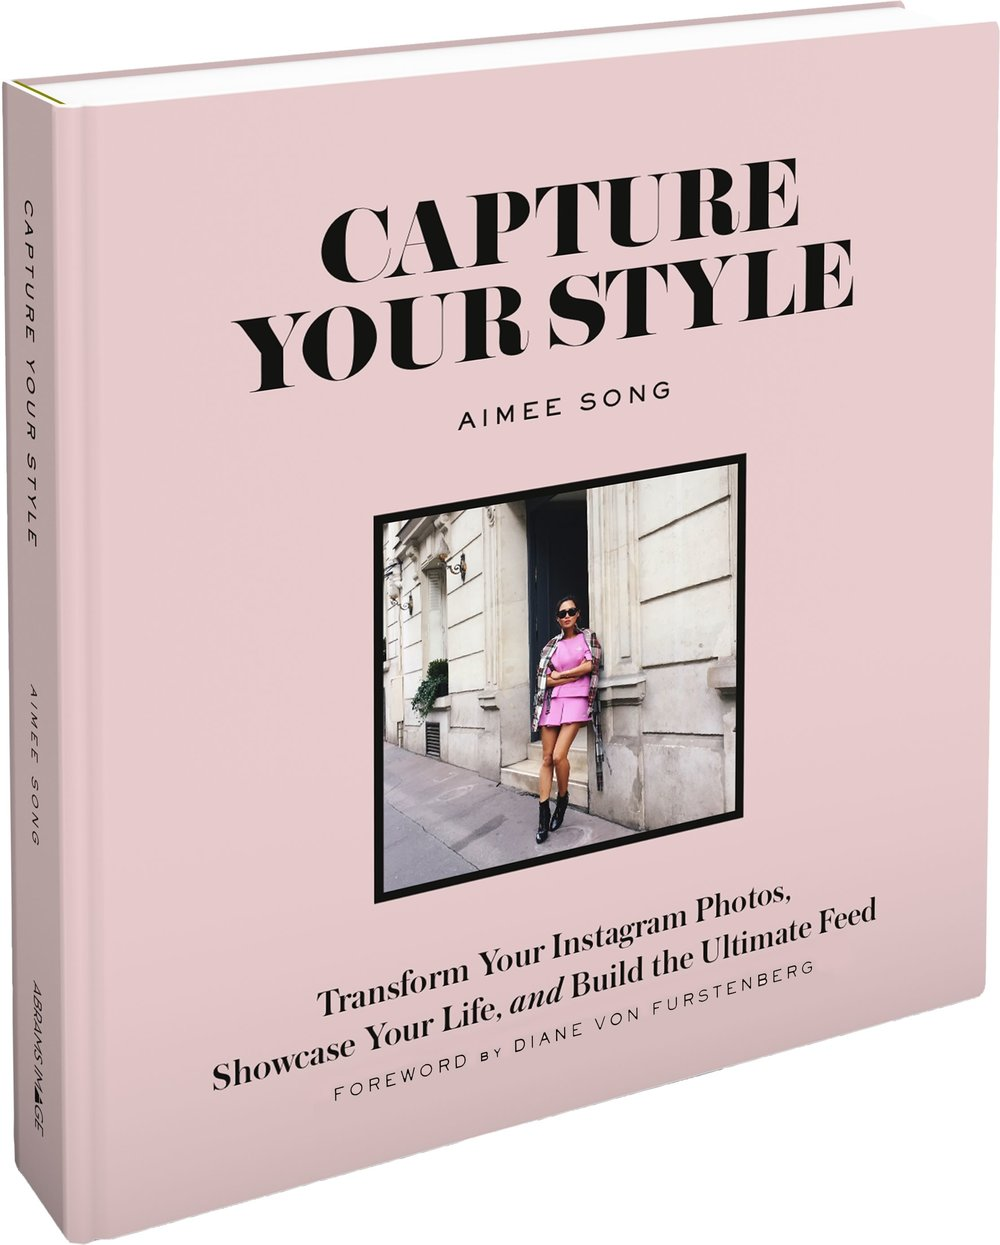 CaptureYourStyle_book-1.jpg